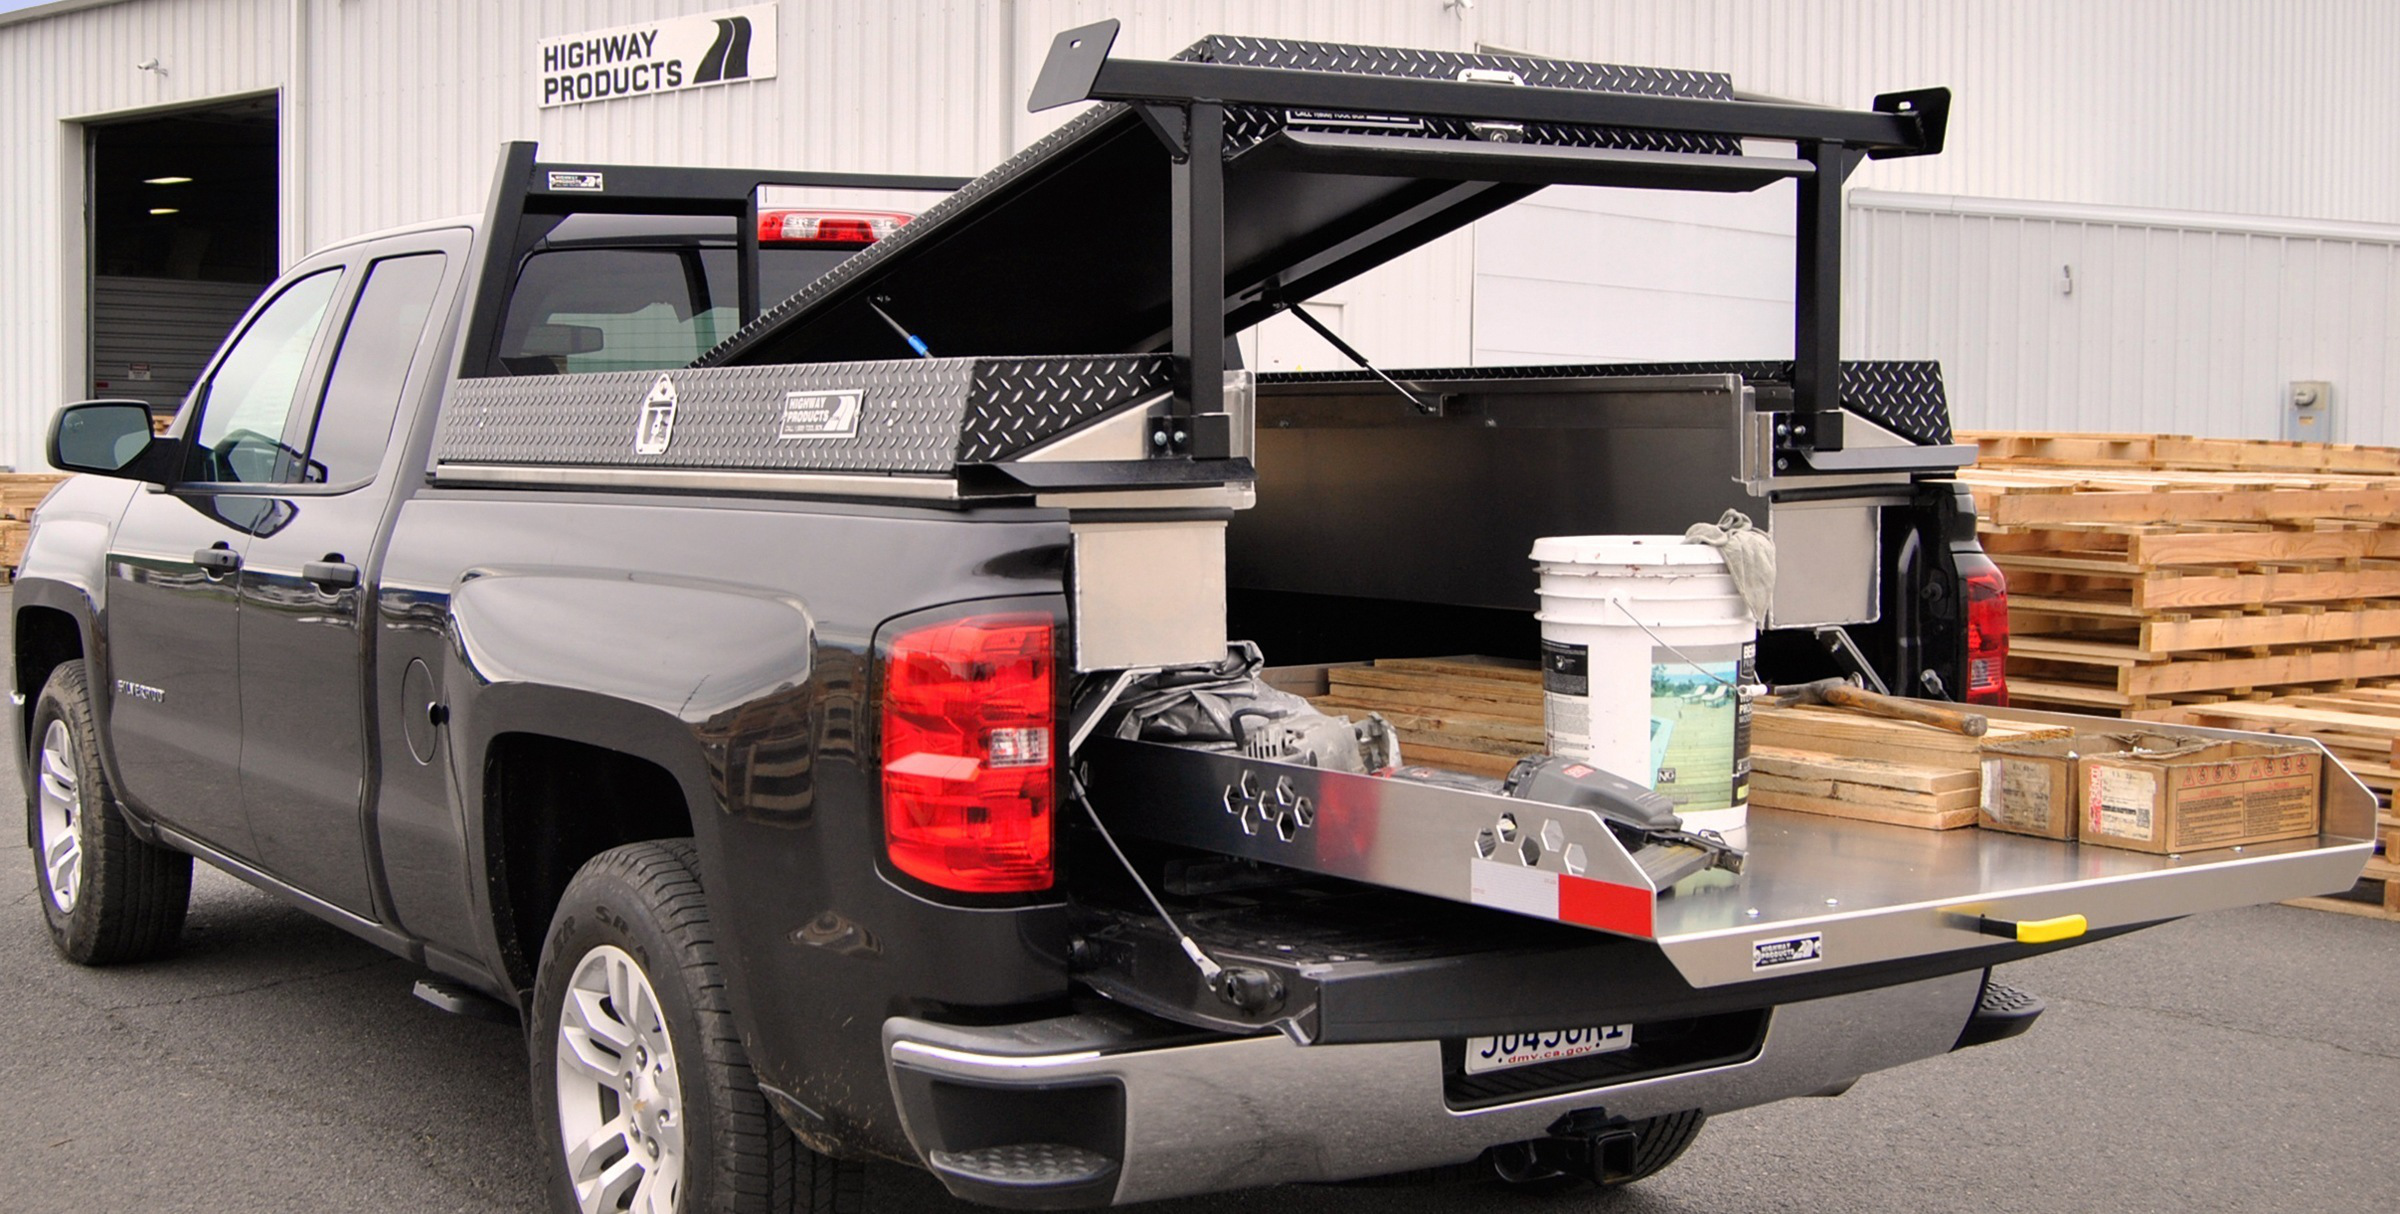 Highway Products Unveils Pickup Bed Organizing System